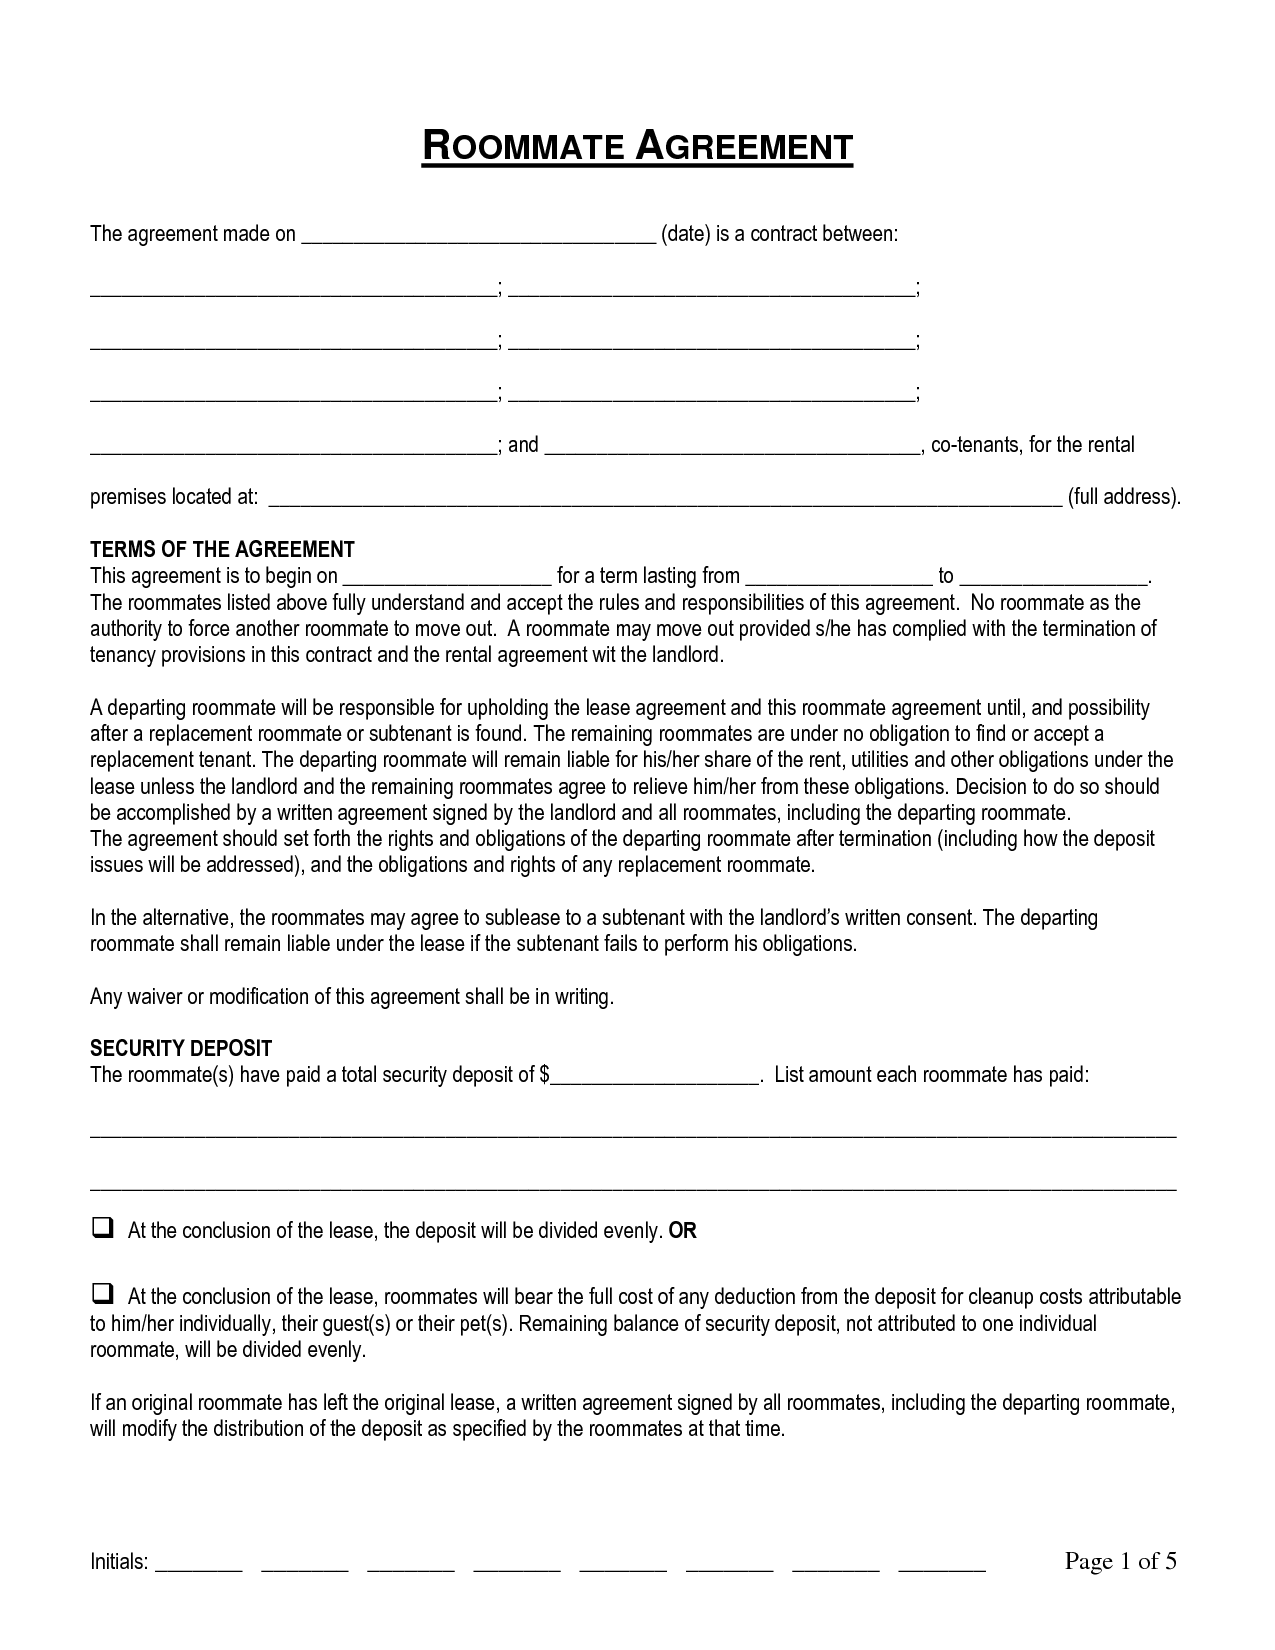 roommate agreement form Termination of Roommate Agreement by pqo69567 - roommate contract ...